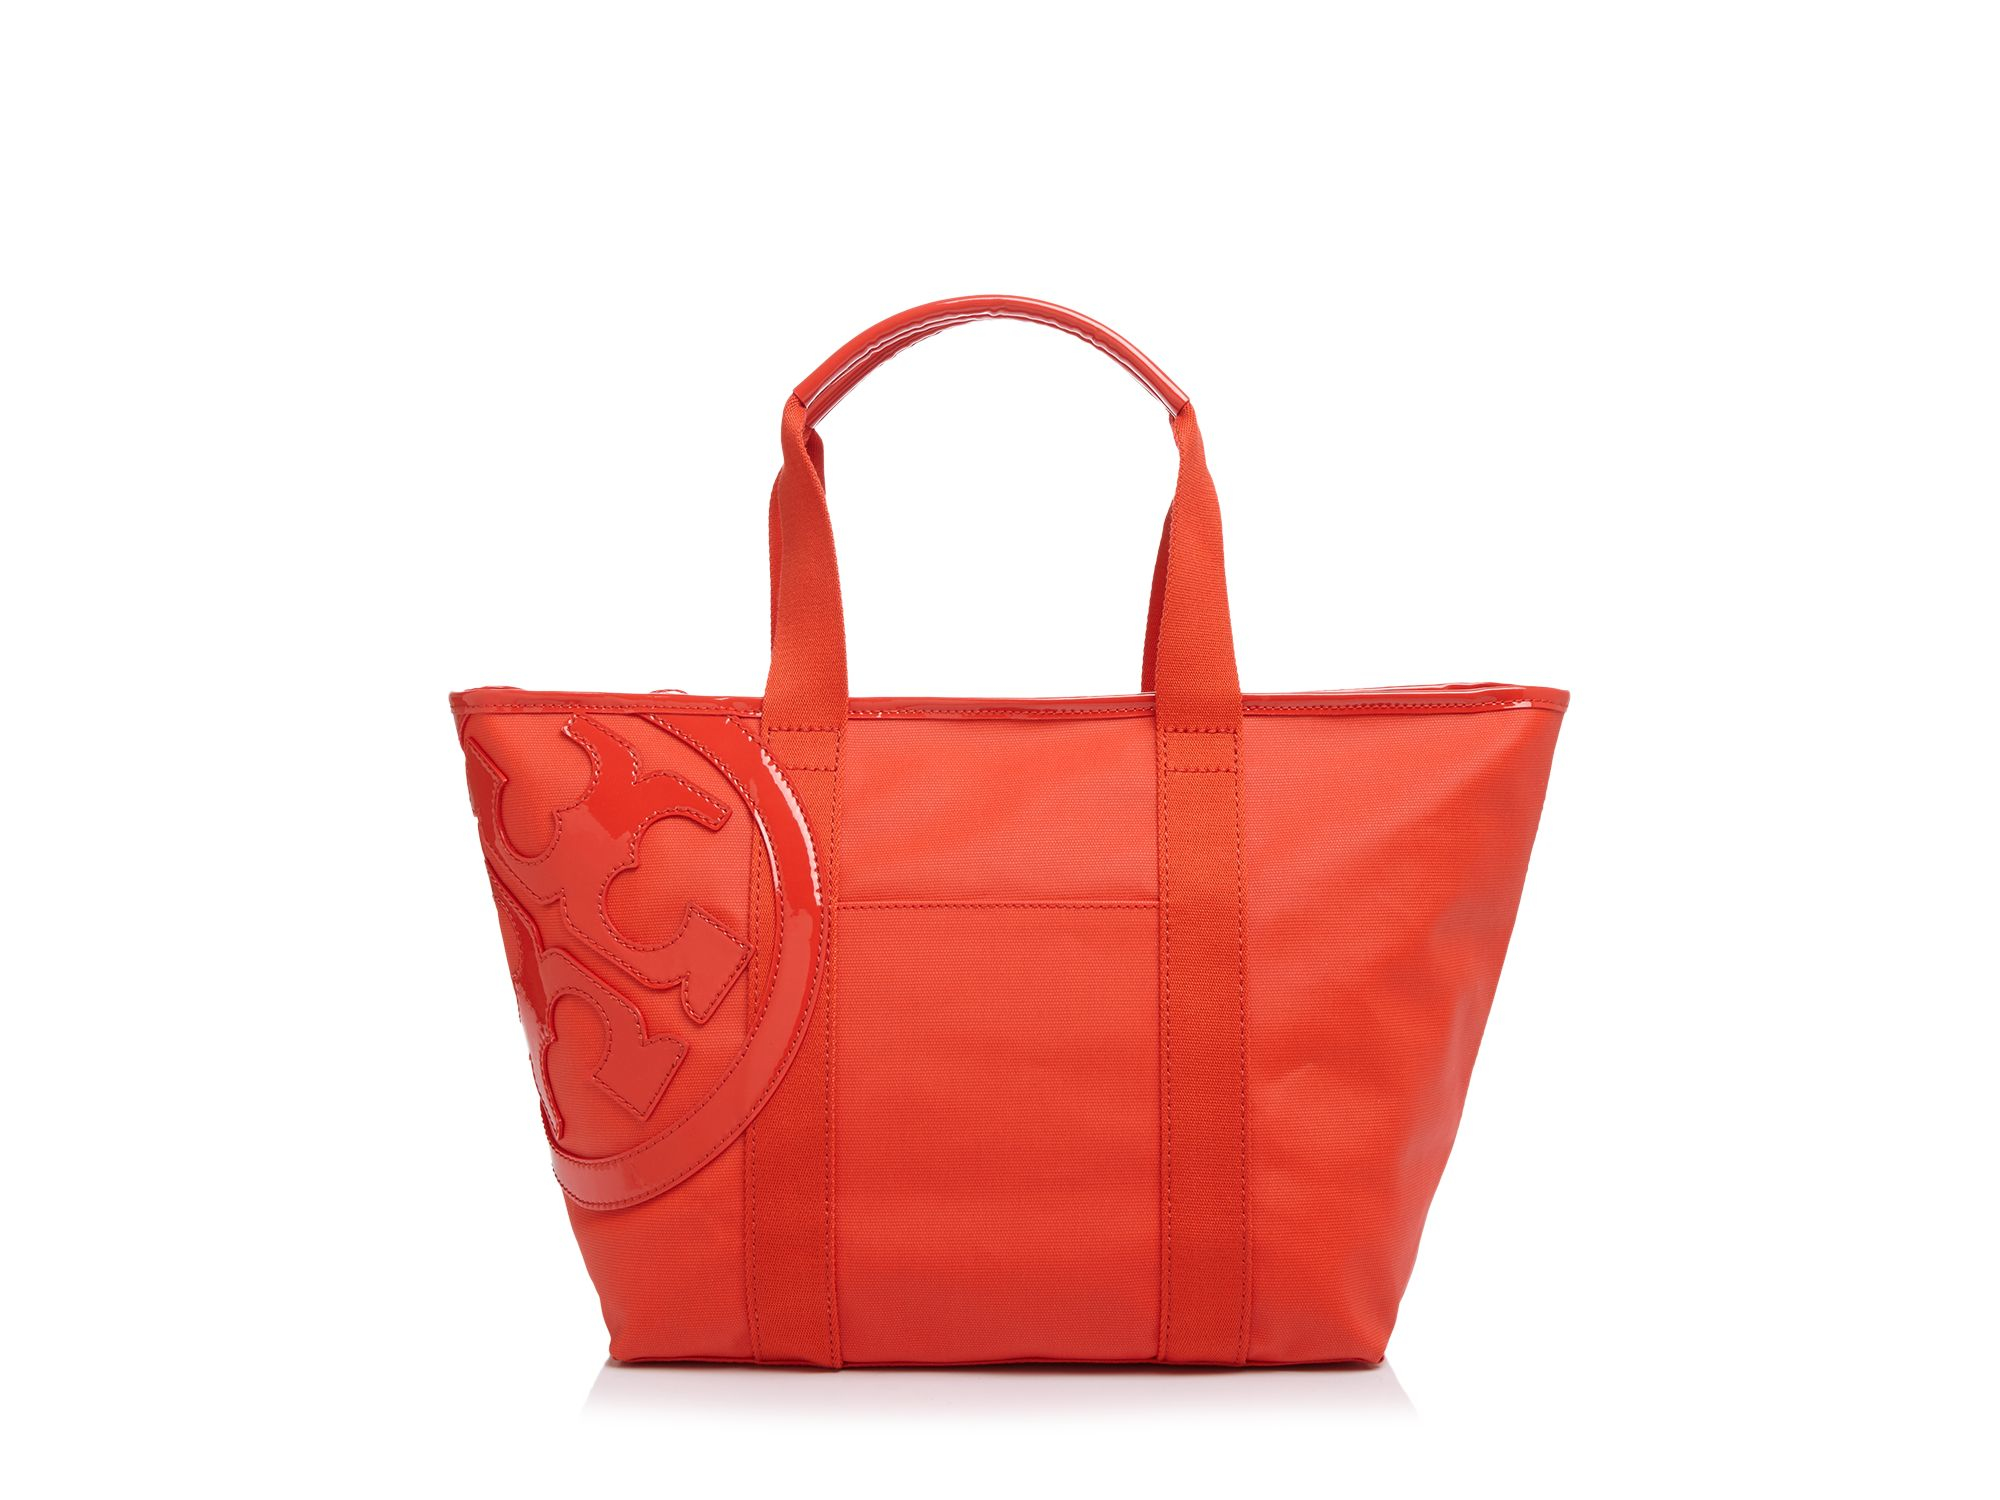 Tory burch Small Beach Canvas Tote in Red | Lyst